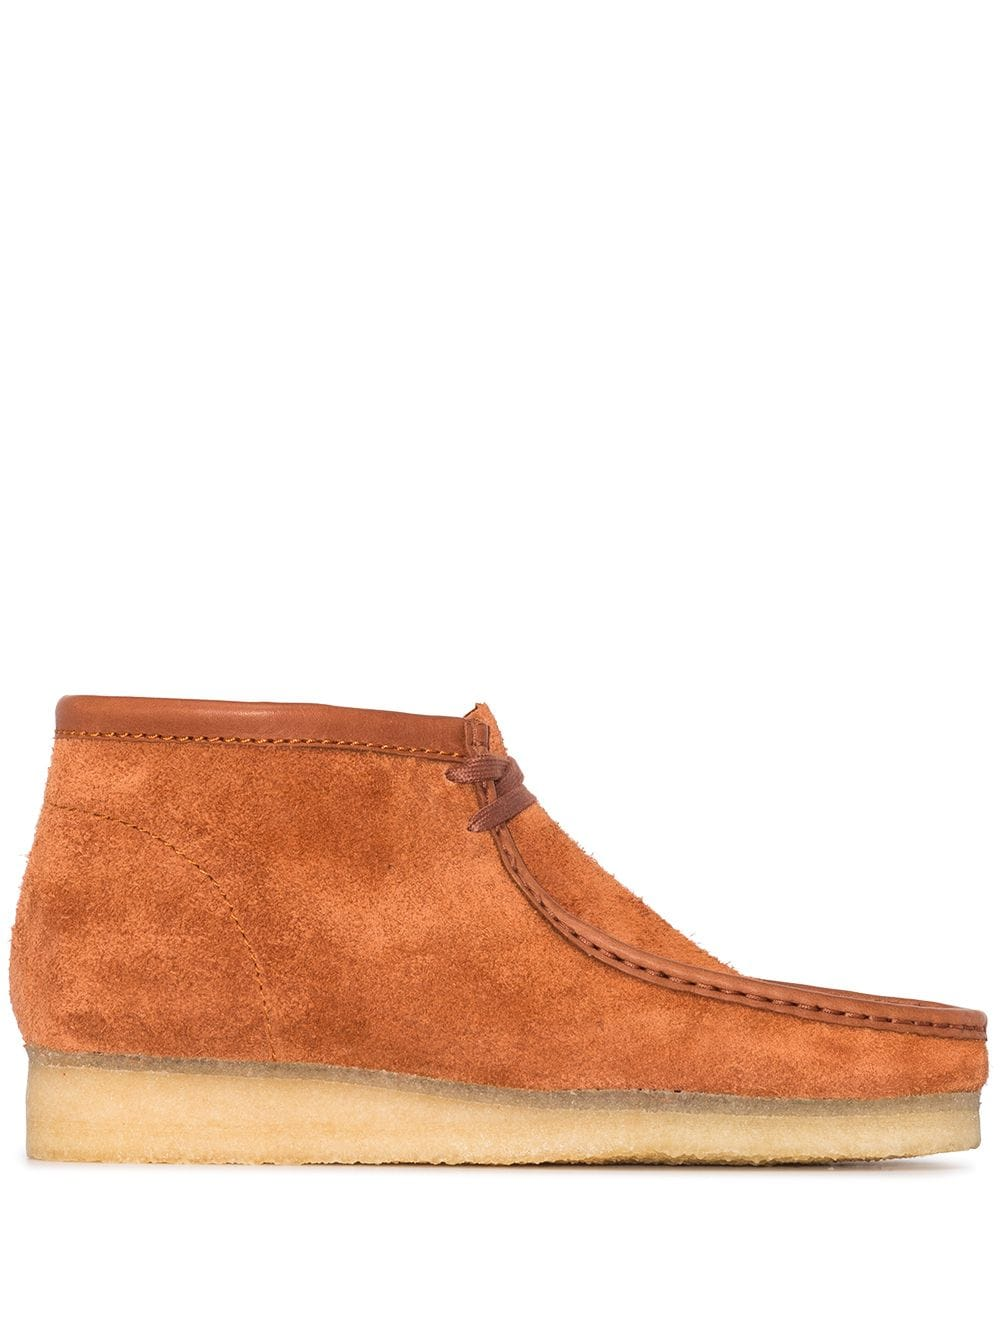 <p class='small-title'>CLARKS ORIGINALS</p>Wallabee Boot Suede Tan Hairy M